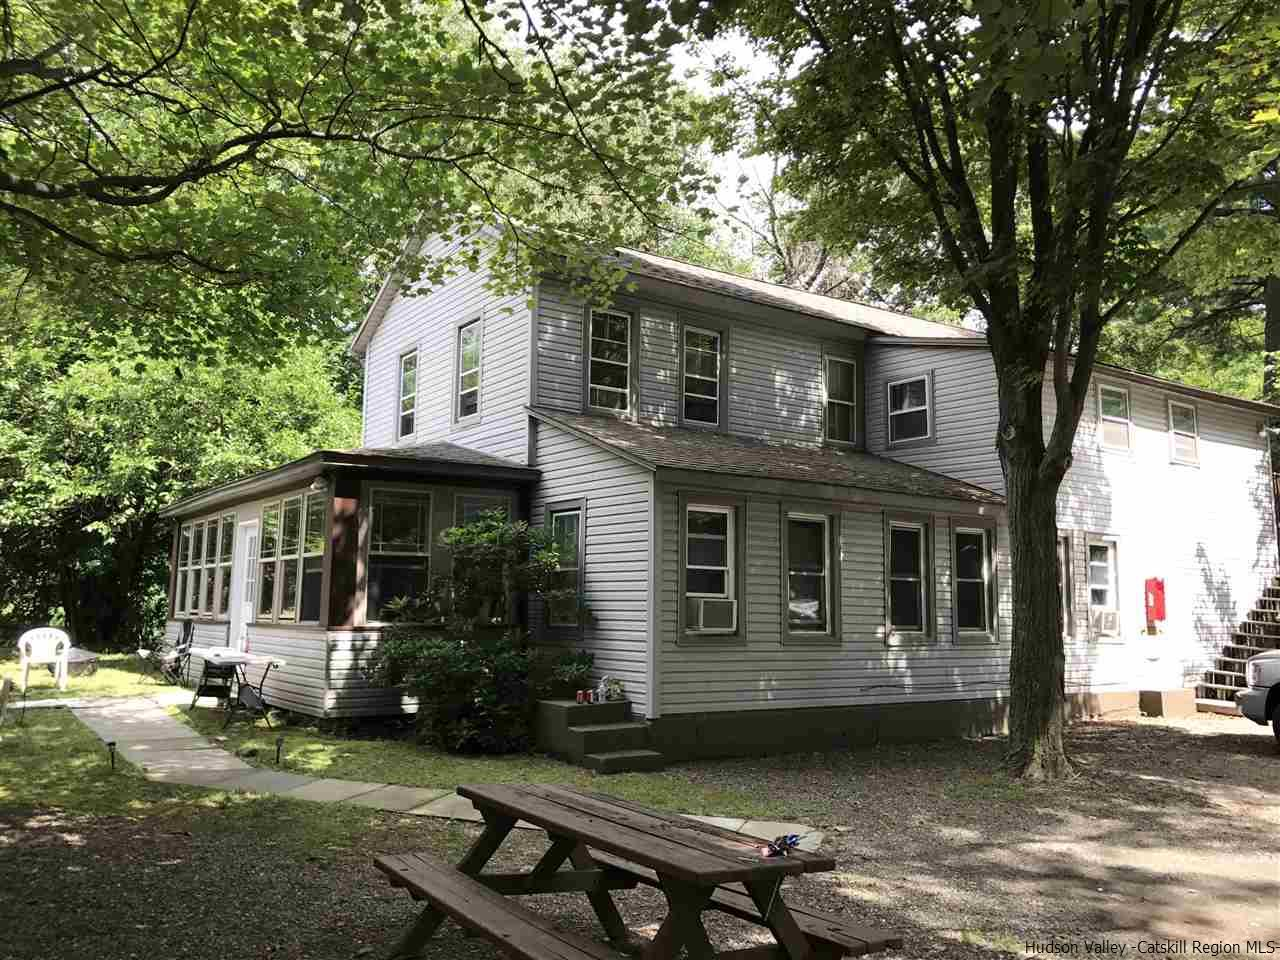 Single Family Home for Sale at 5 Pine Avenue 5 Pine Avenue Palenville, New York 12463 United States